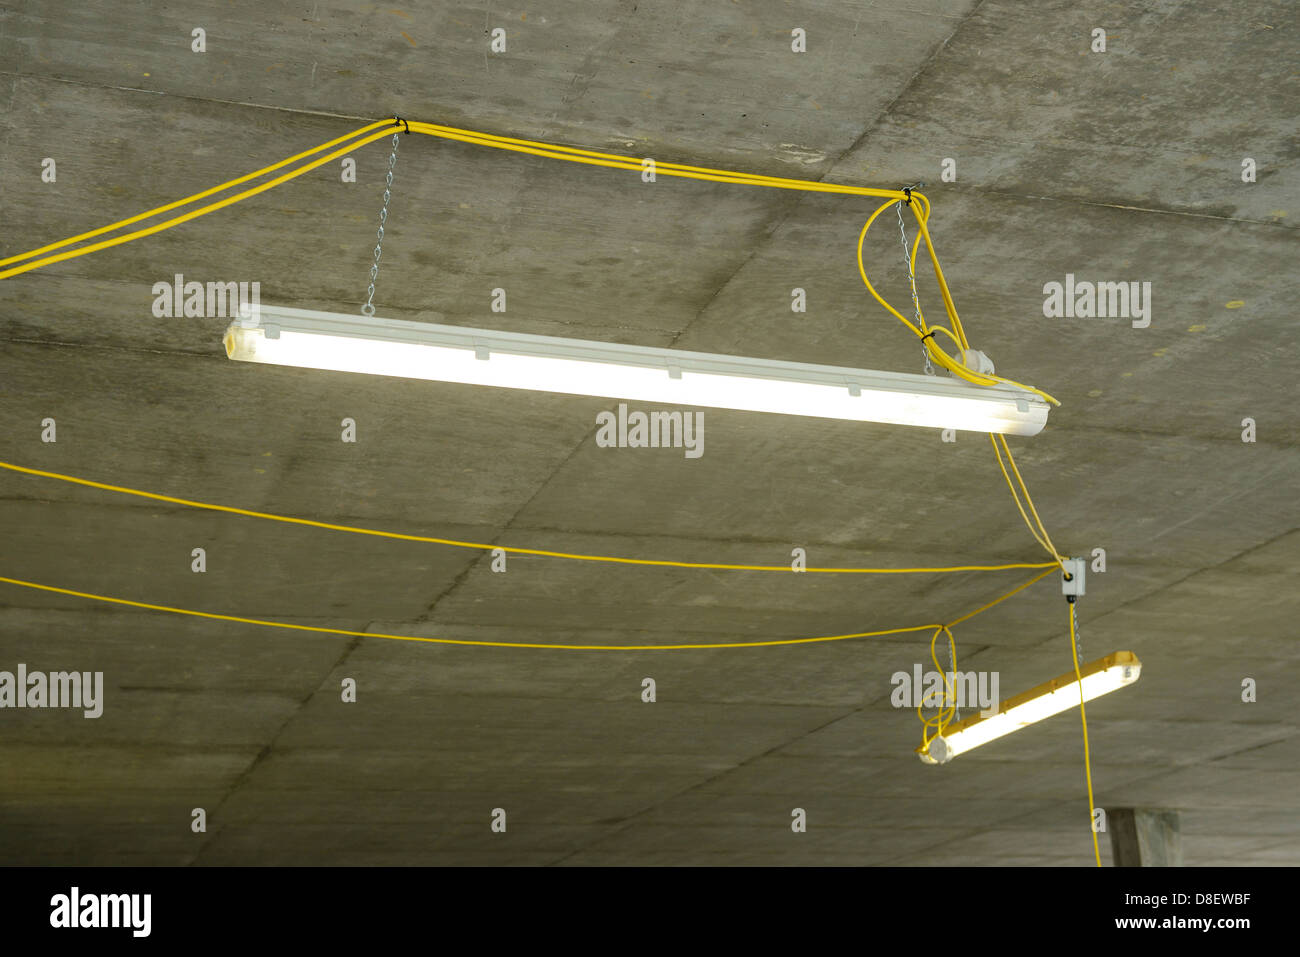 Temporary strip lighting on a construction site - Stock Image